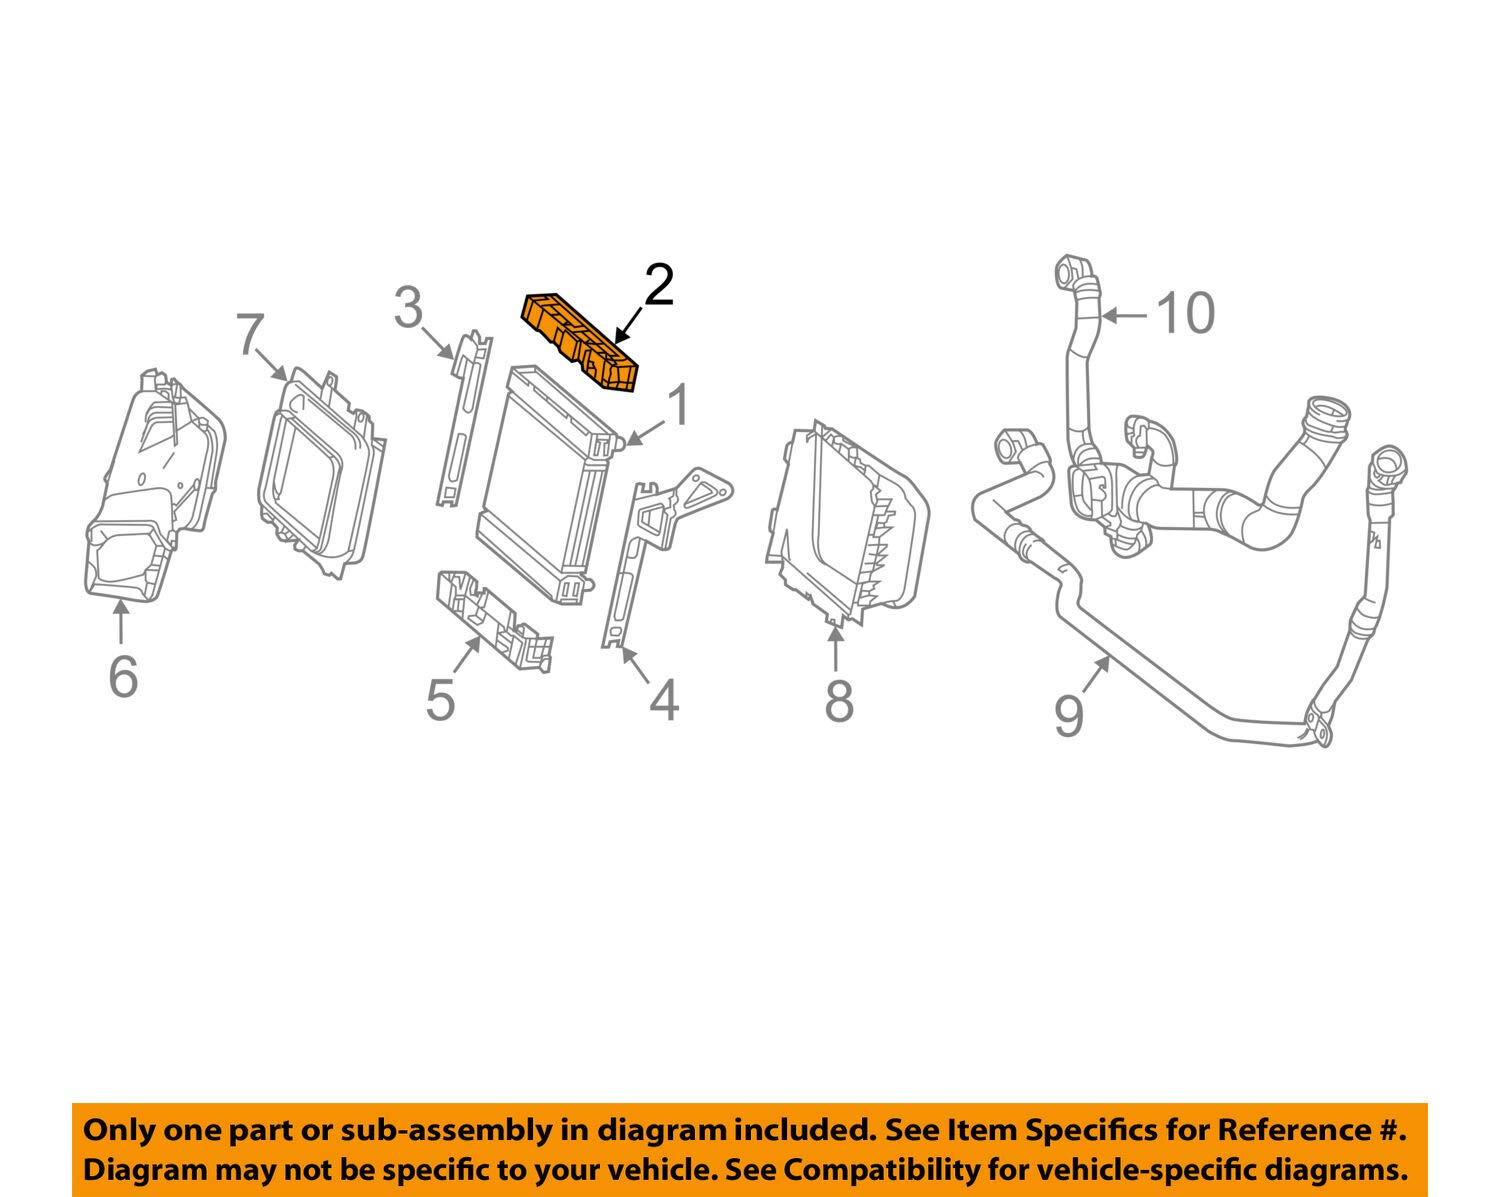 Mercedes-Benz Genuine Auxiliary Radiator Upper Bracket 222-505-04-40 by Mercedes Benz (Image #1)